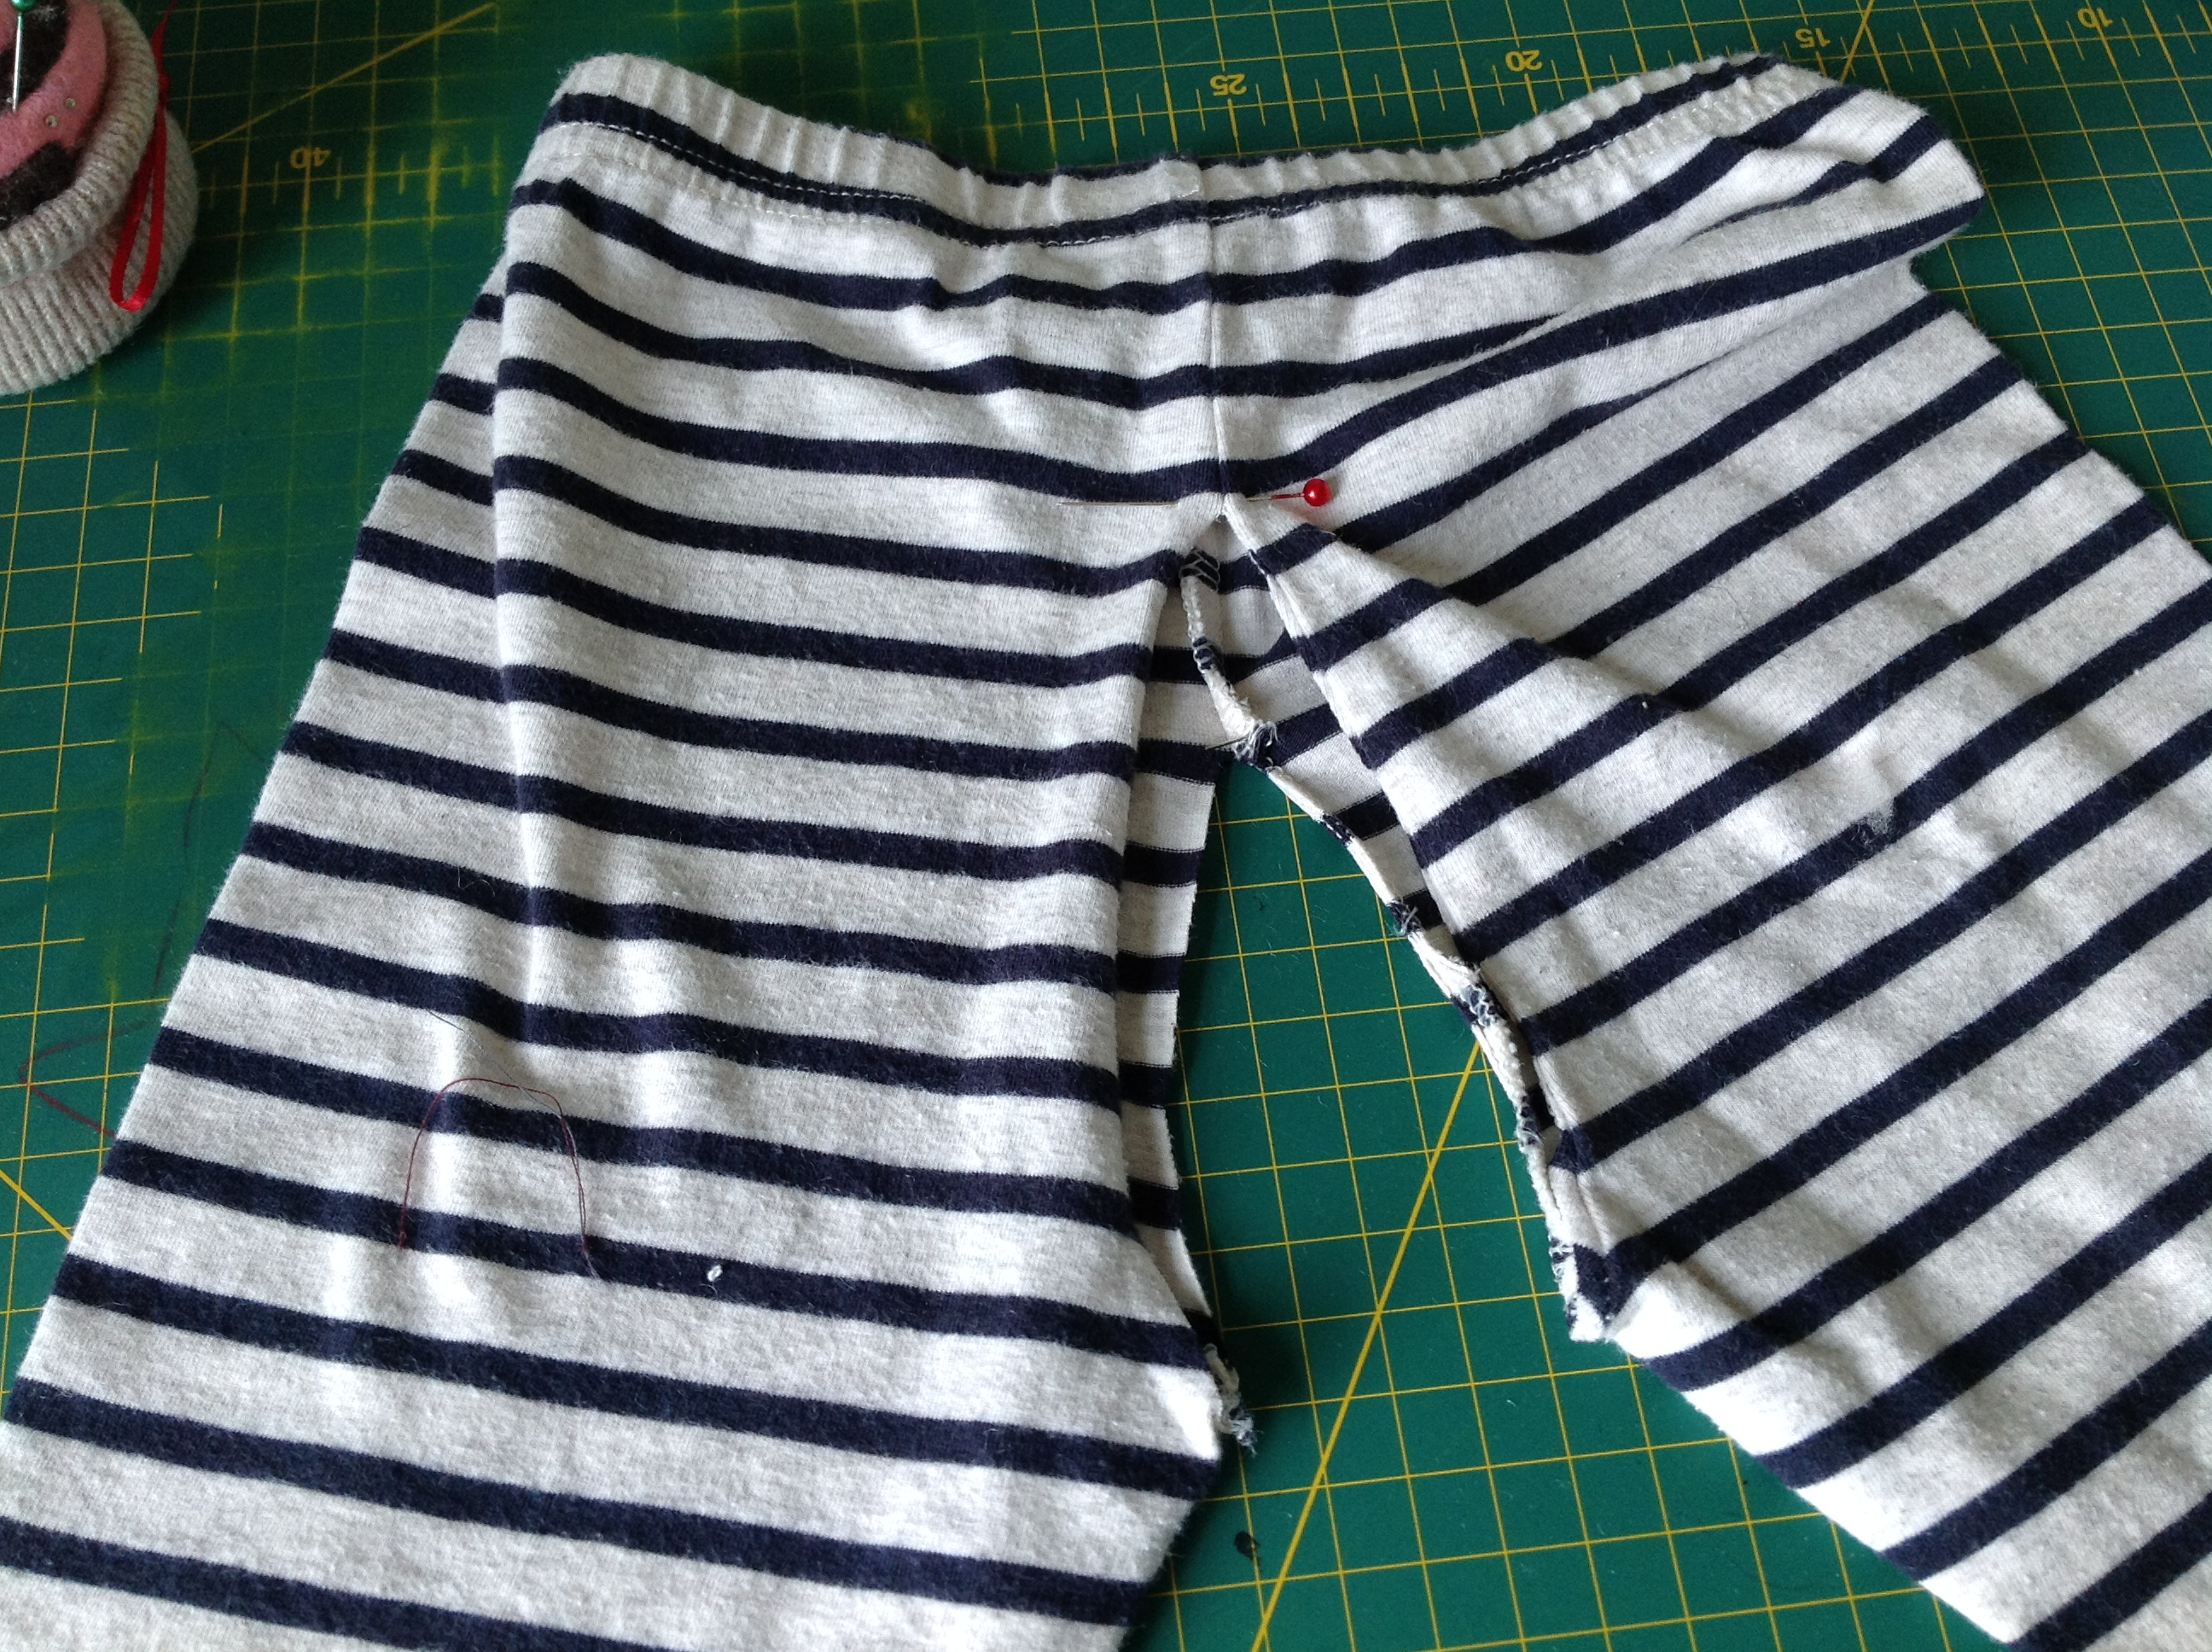 DIY split crotch trousers pants elimination communication clothing